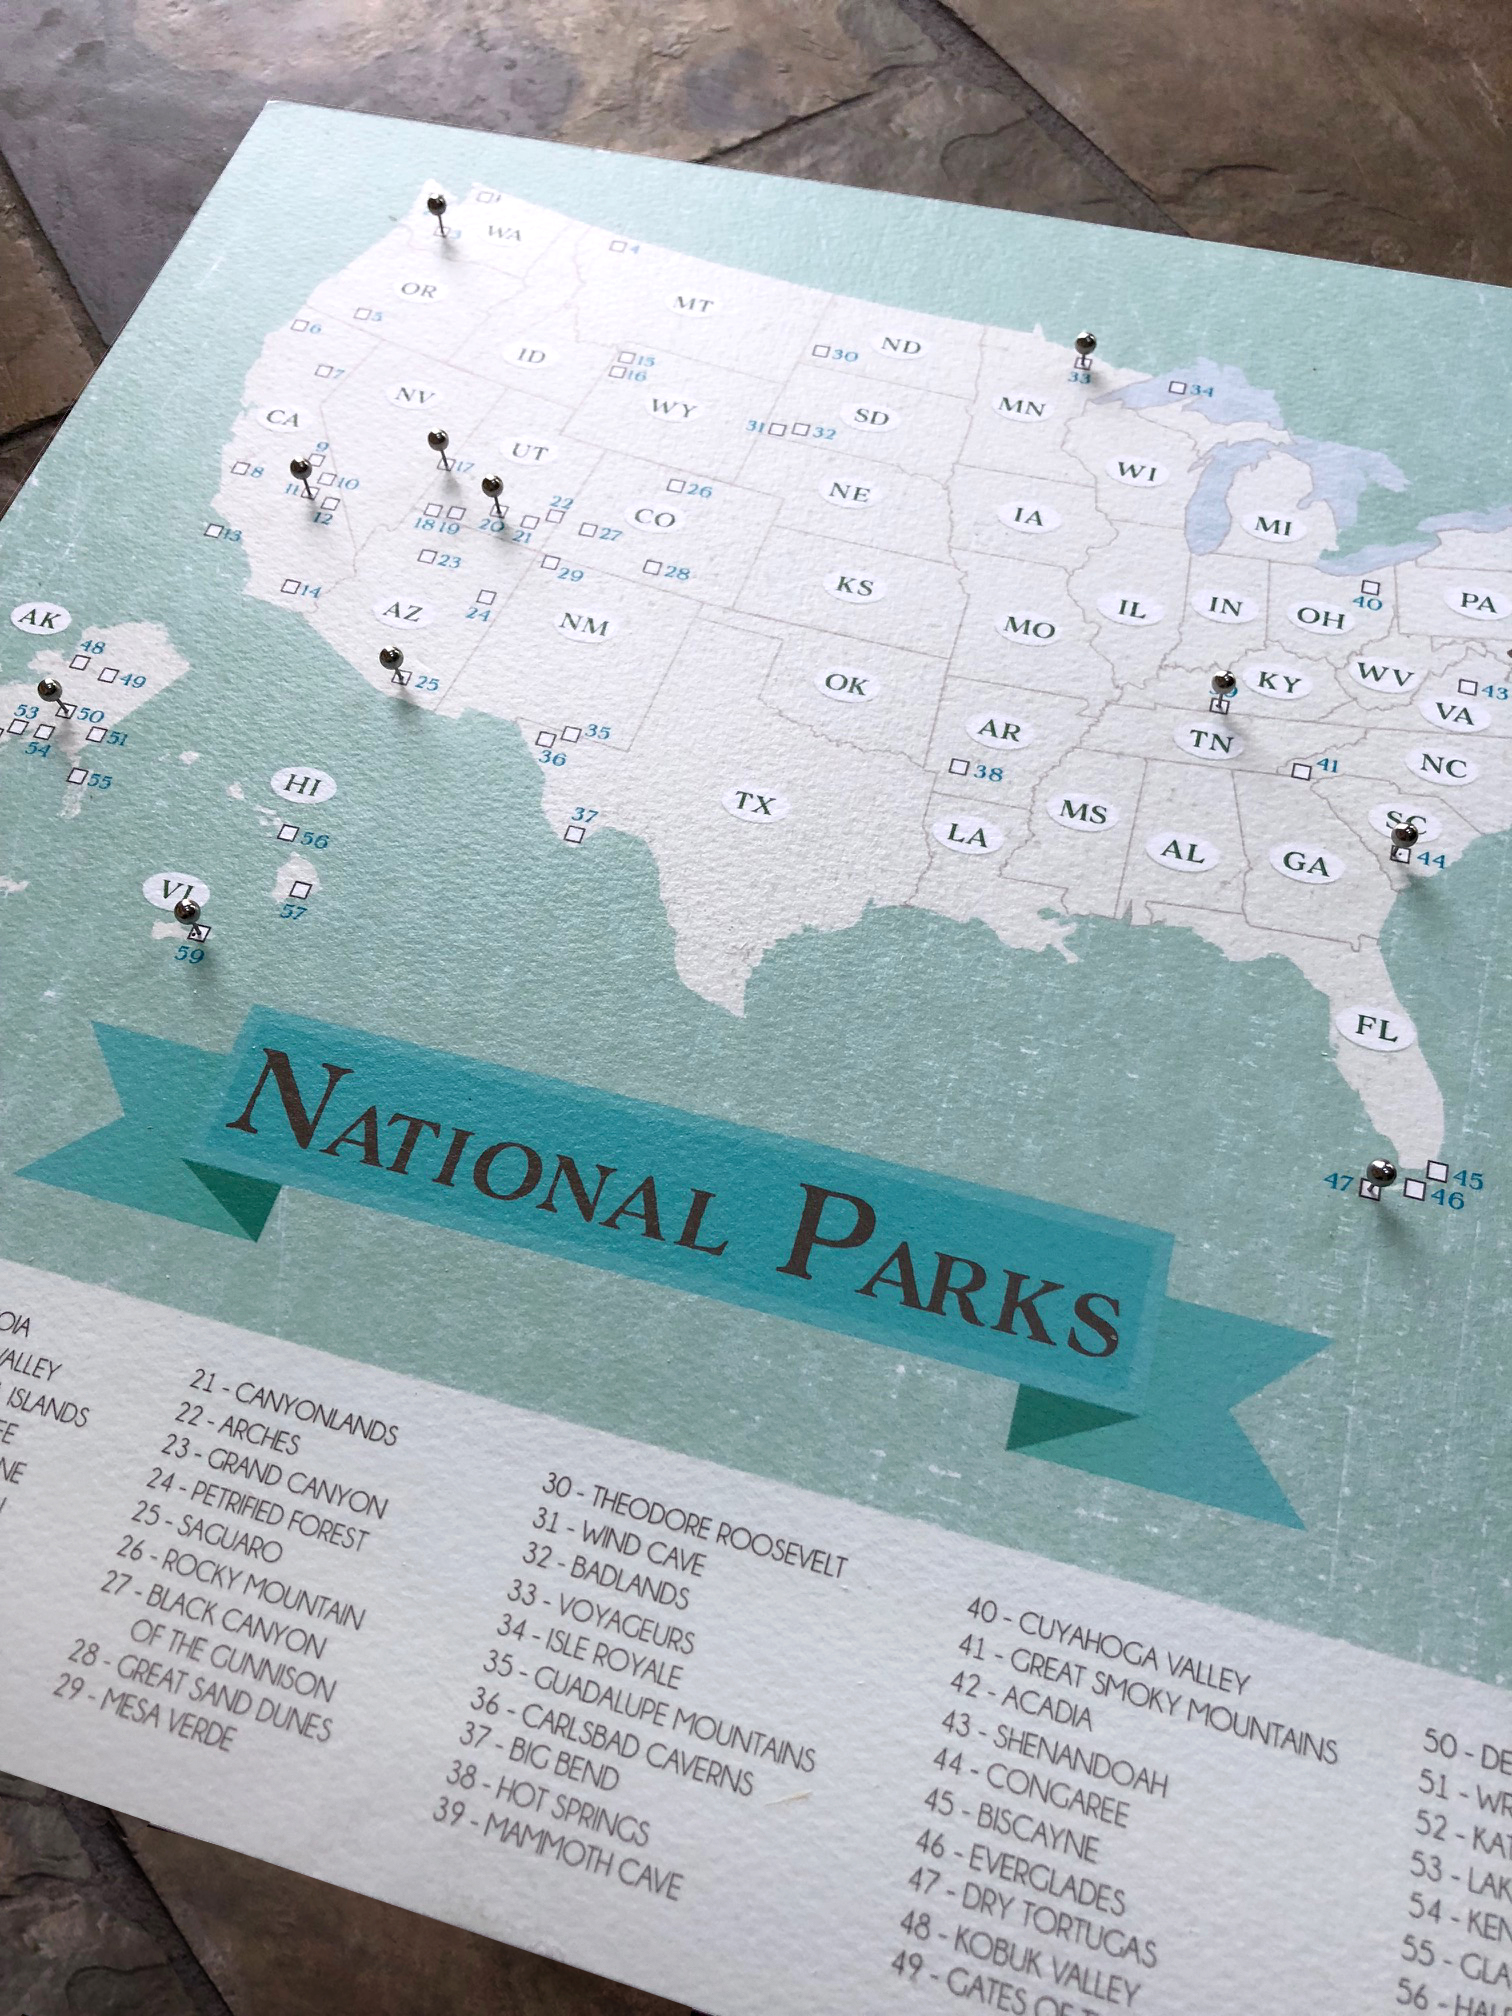 OUr national parks map is a hit. Mark your travels to the parks with a pin or a pen. Available  Here  .